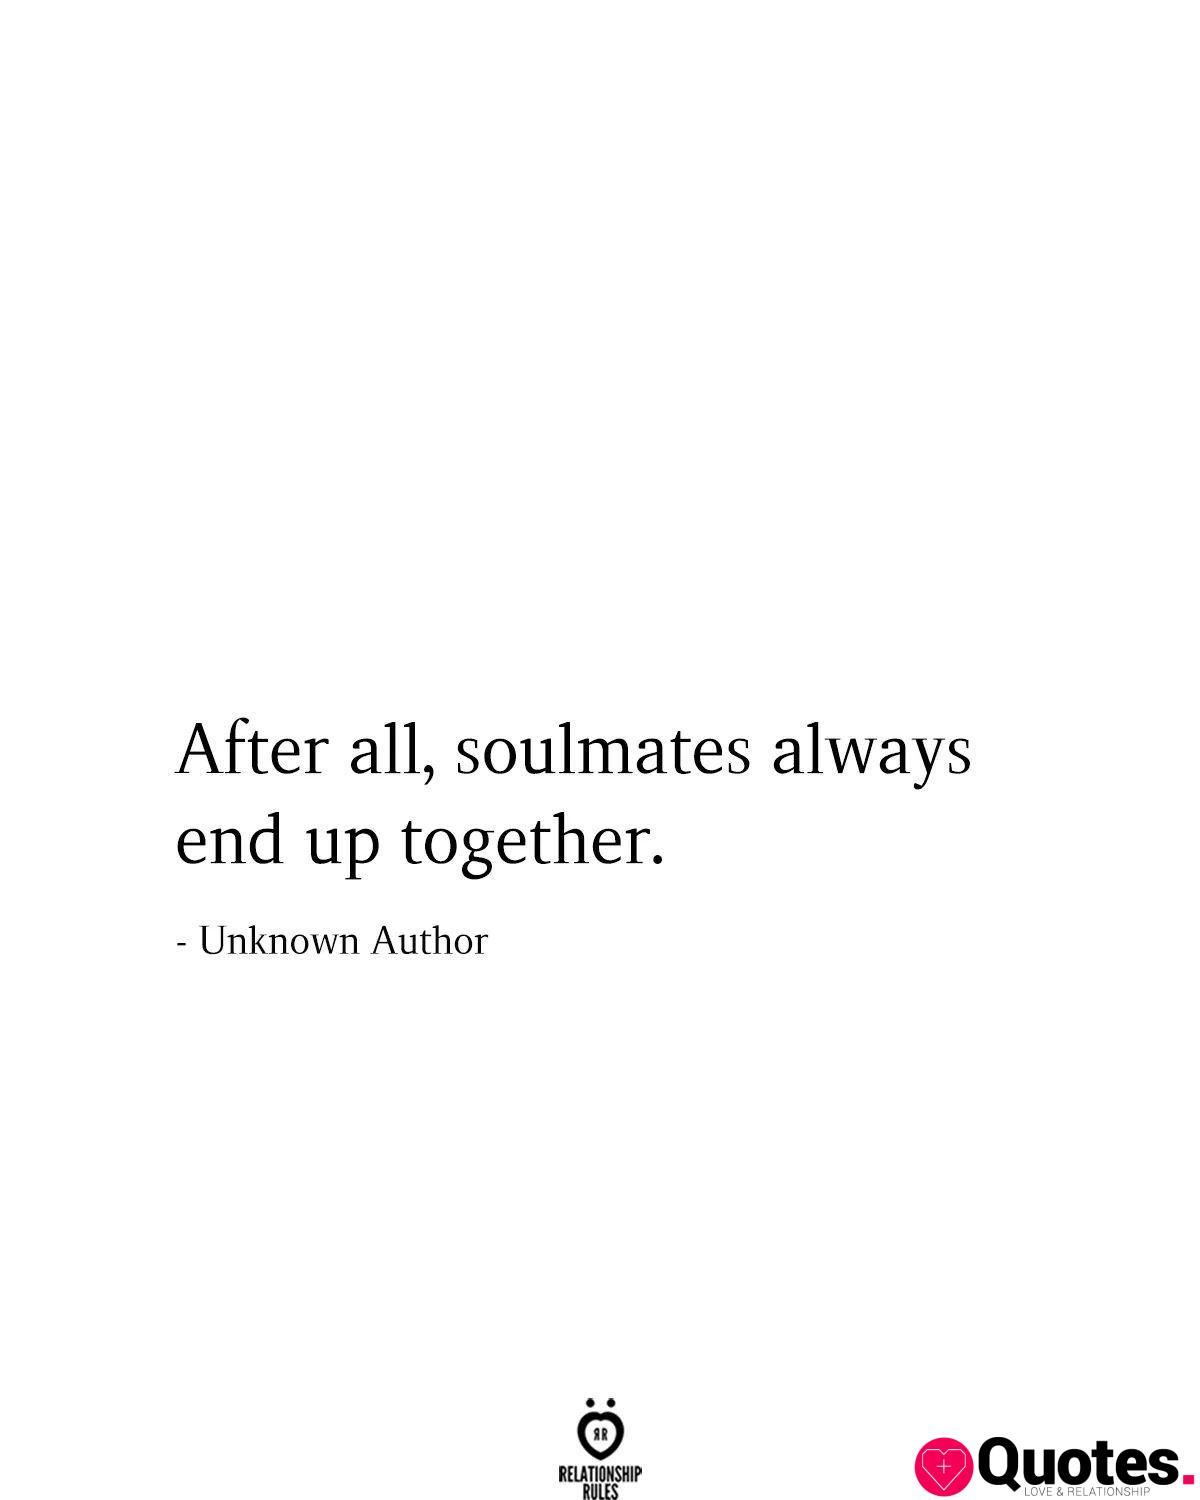 Old Love Quotes : quotes, Quotes, Lists, Enregistrement, Daily, Leading, Relationship, Quotes,, Sayings, Collections